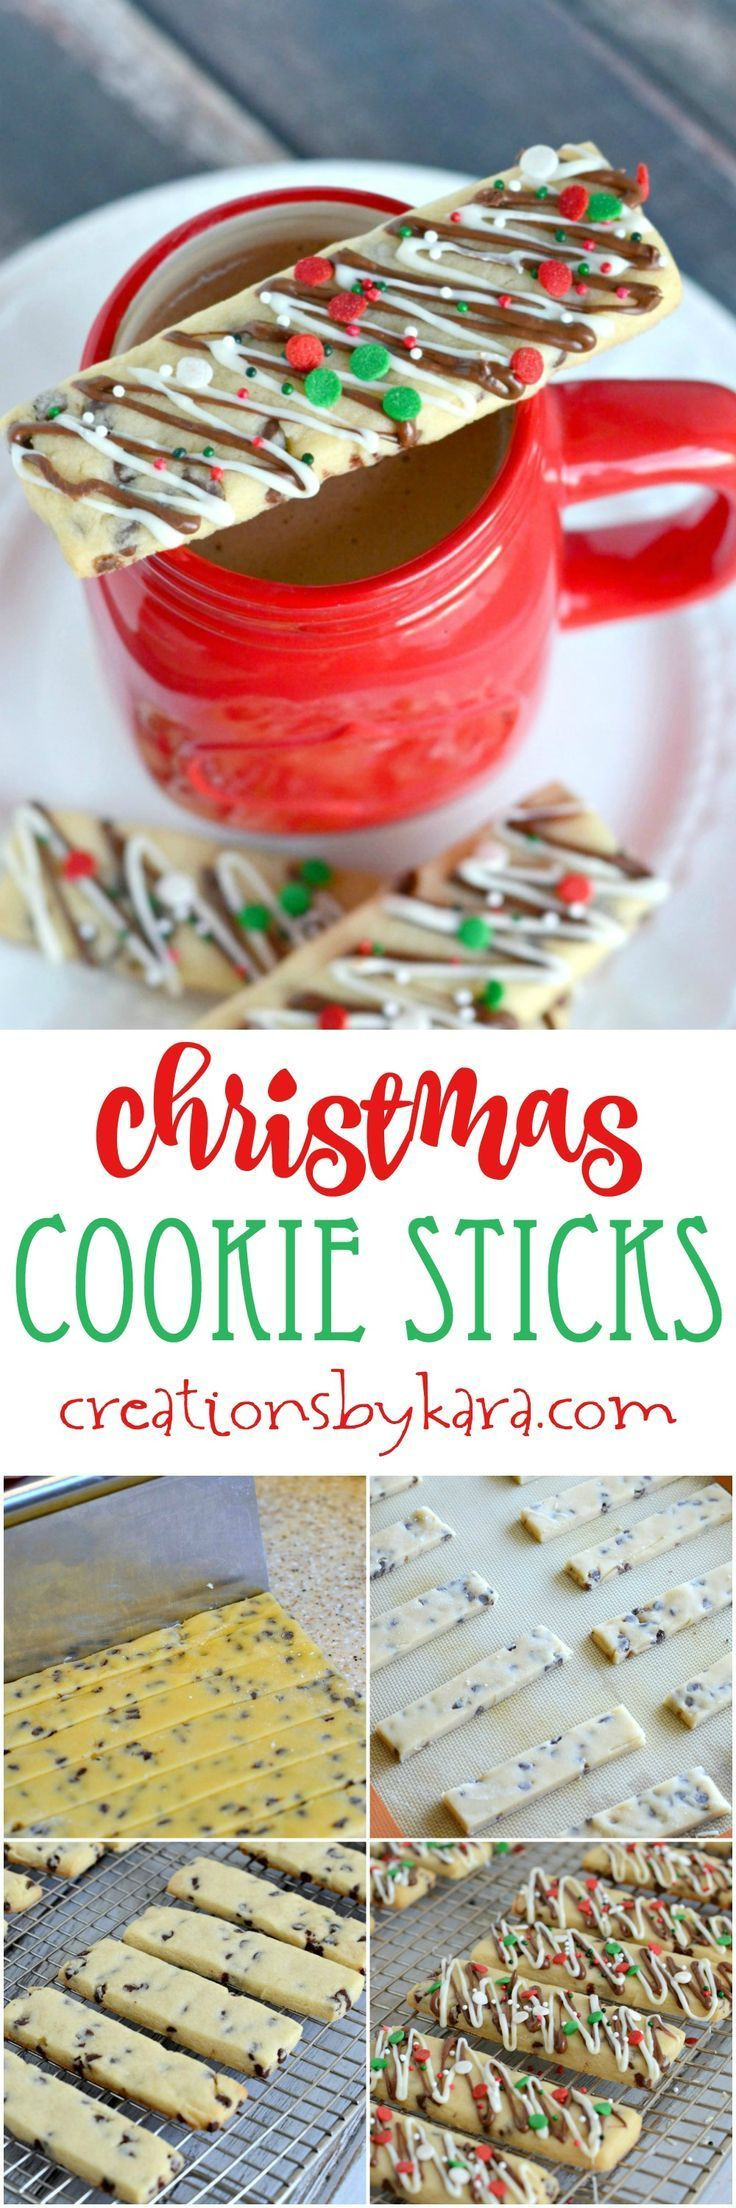 Christmas Cookies Recipe Pinterest  1000 ideas about Christmas Cookies on Pinterest